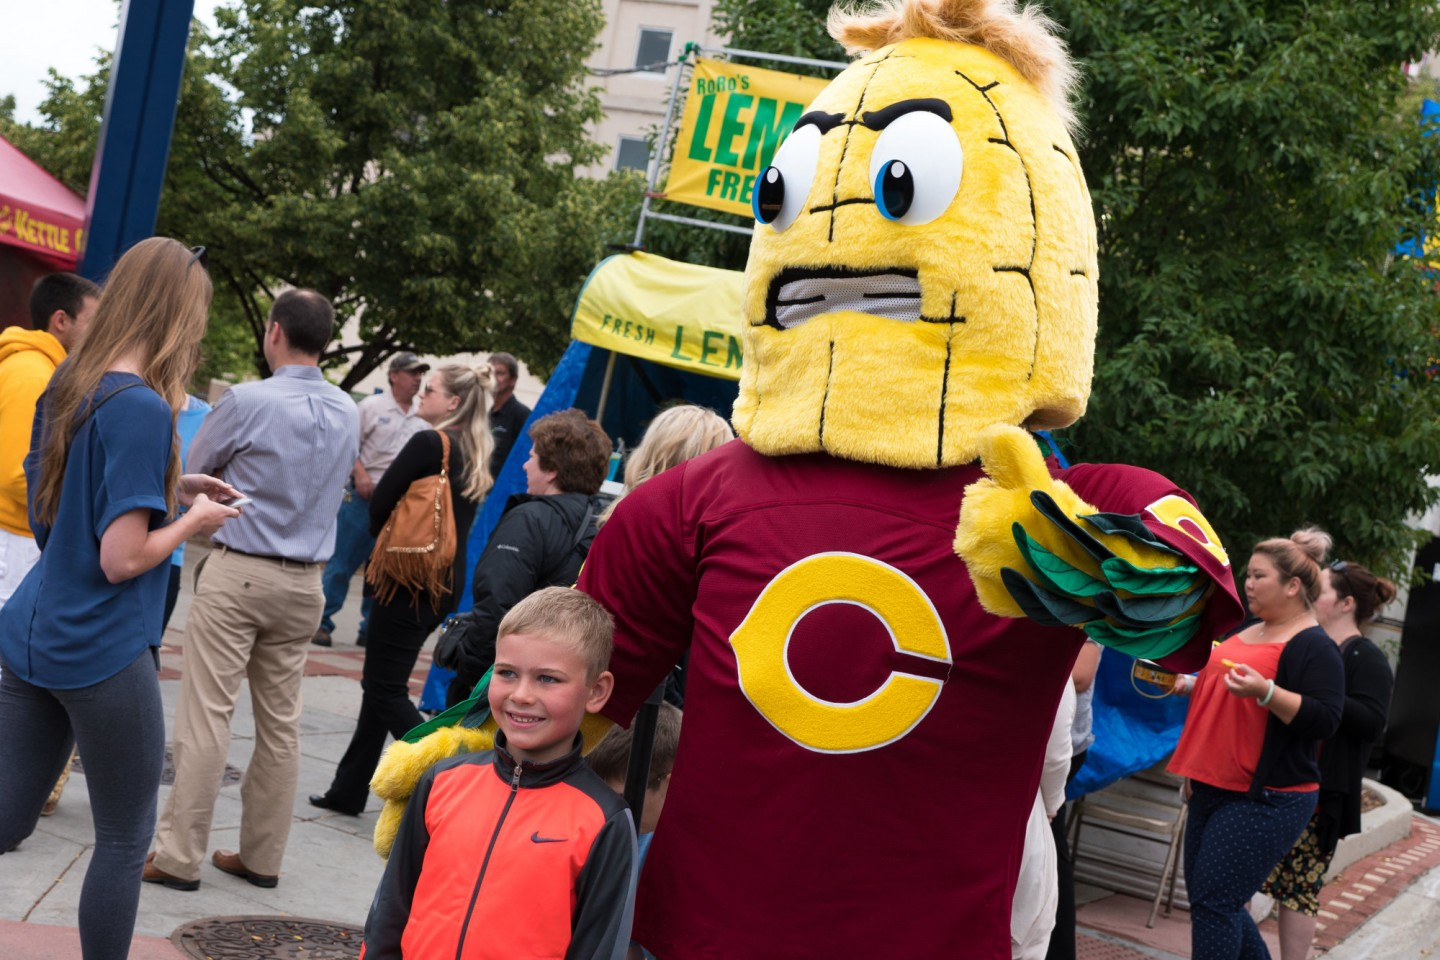 Kernel posing with boy at Street Fair